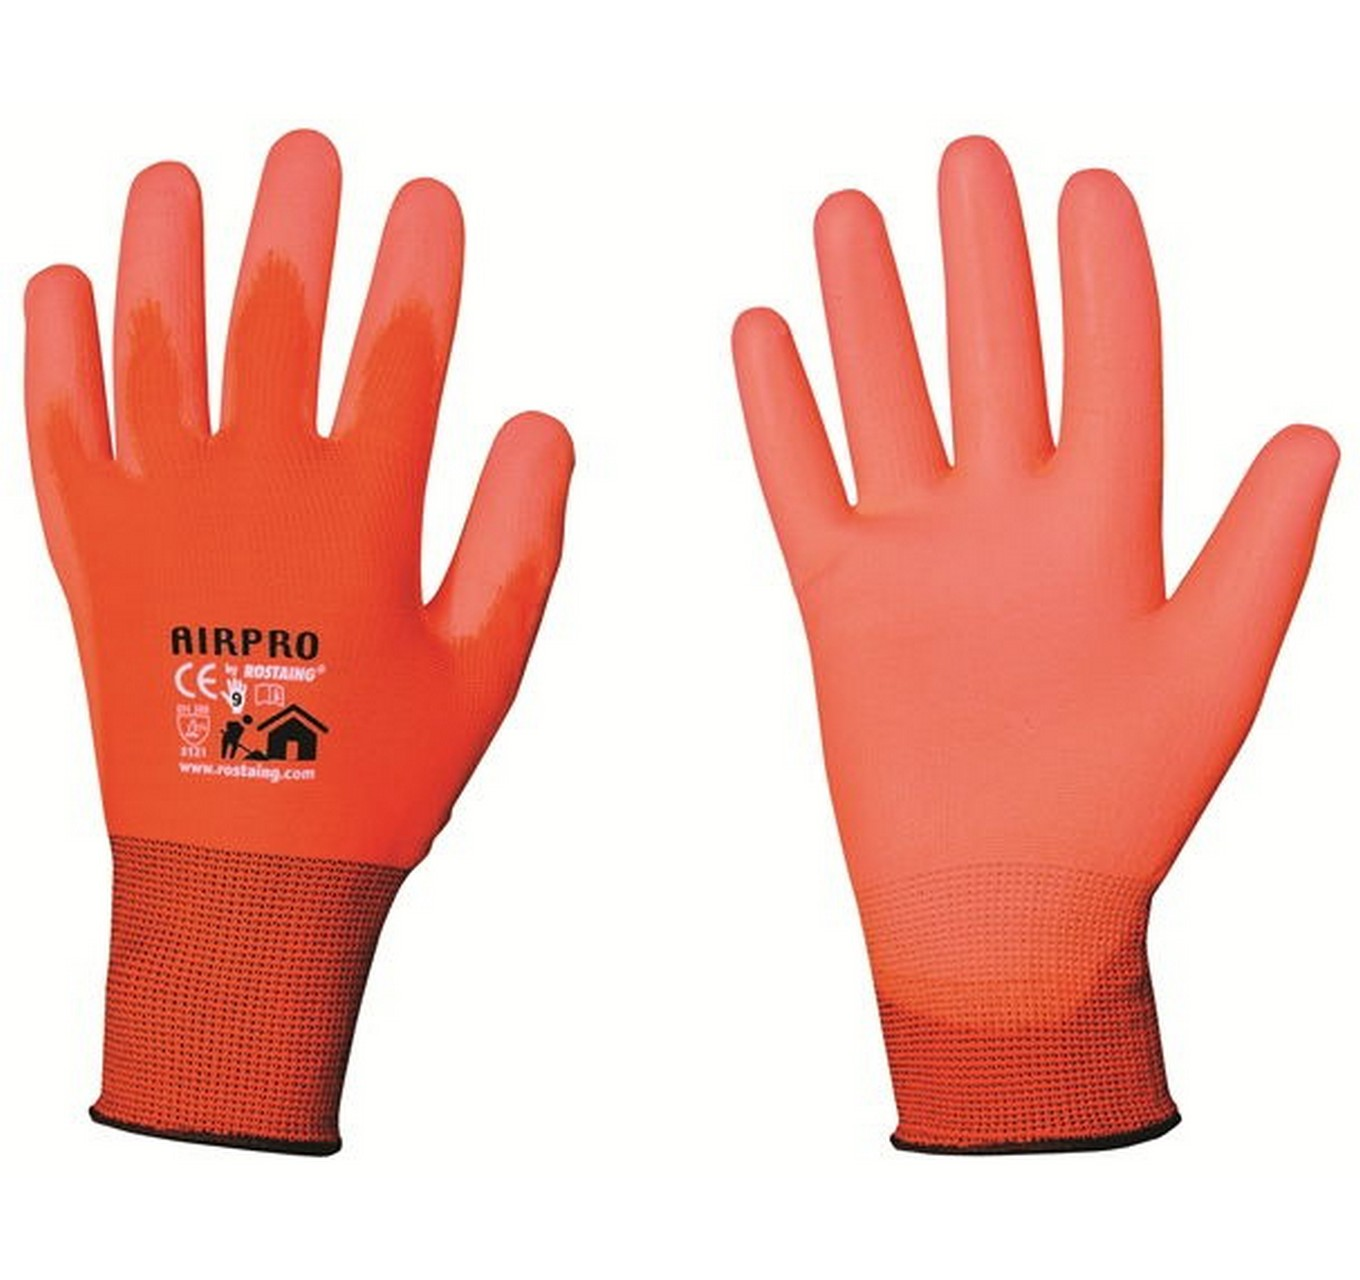 Airpro Gloves 10